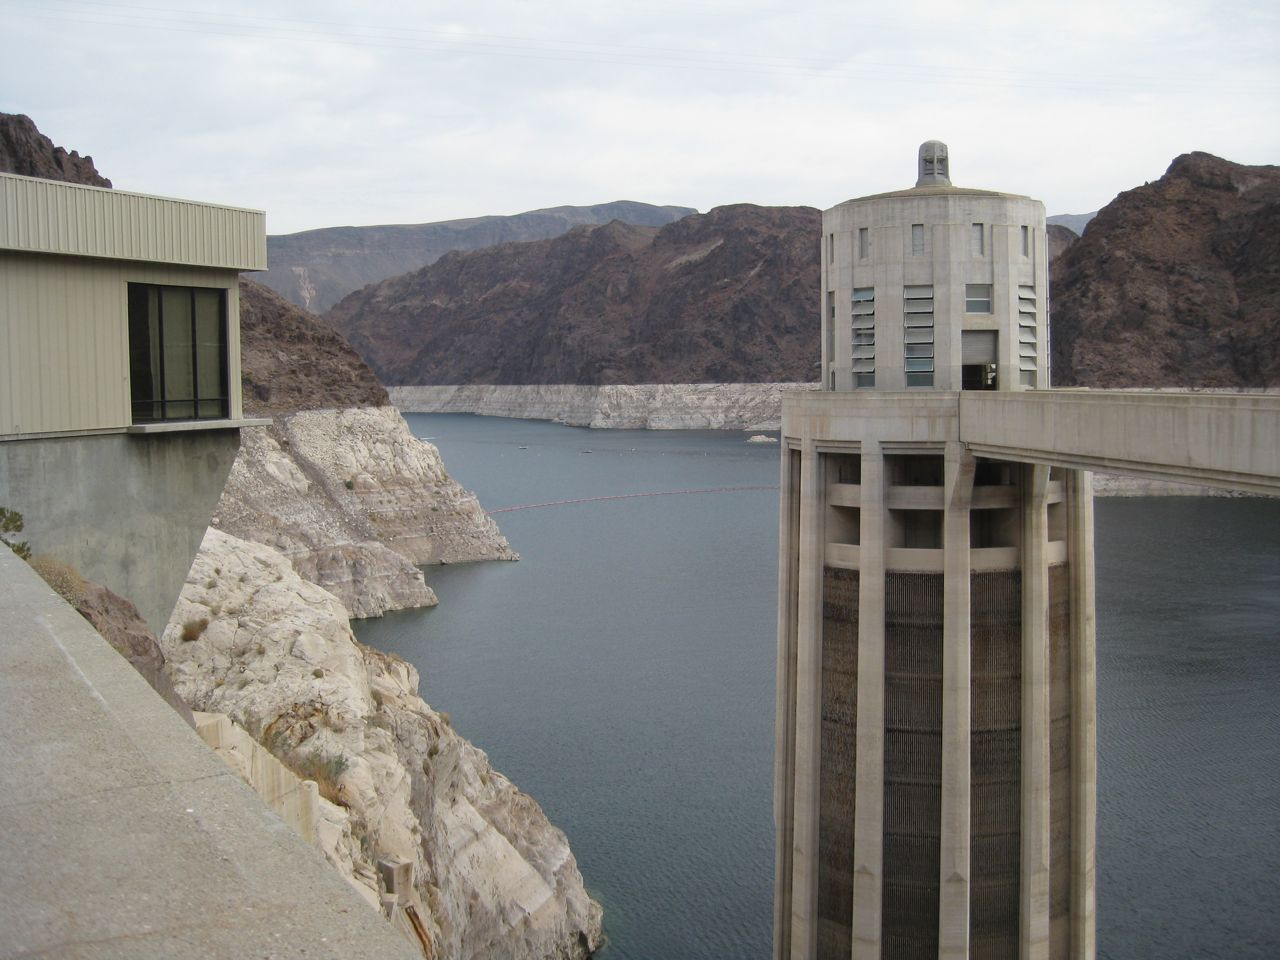 Lake Mead, October 2010